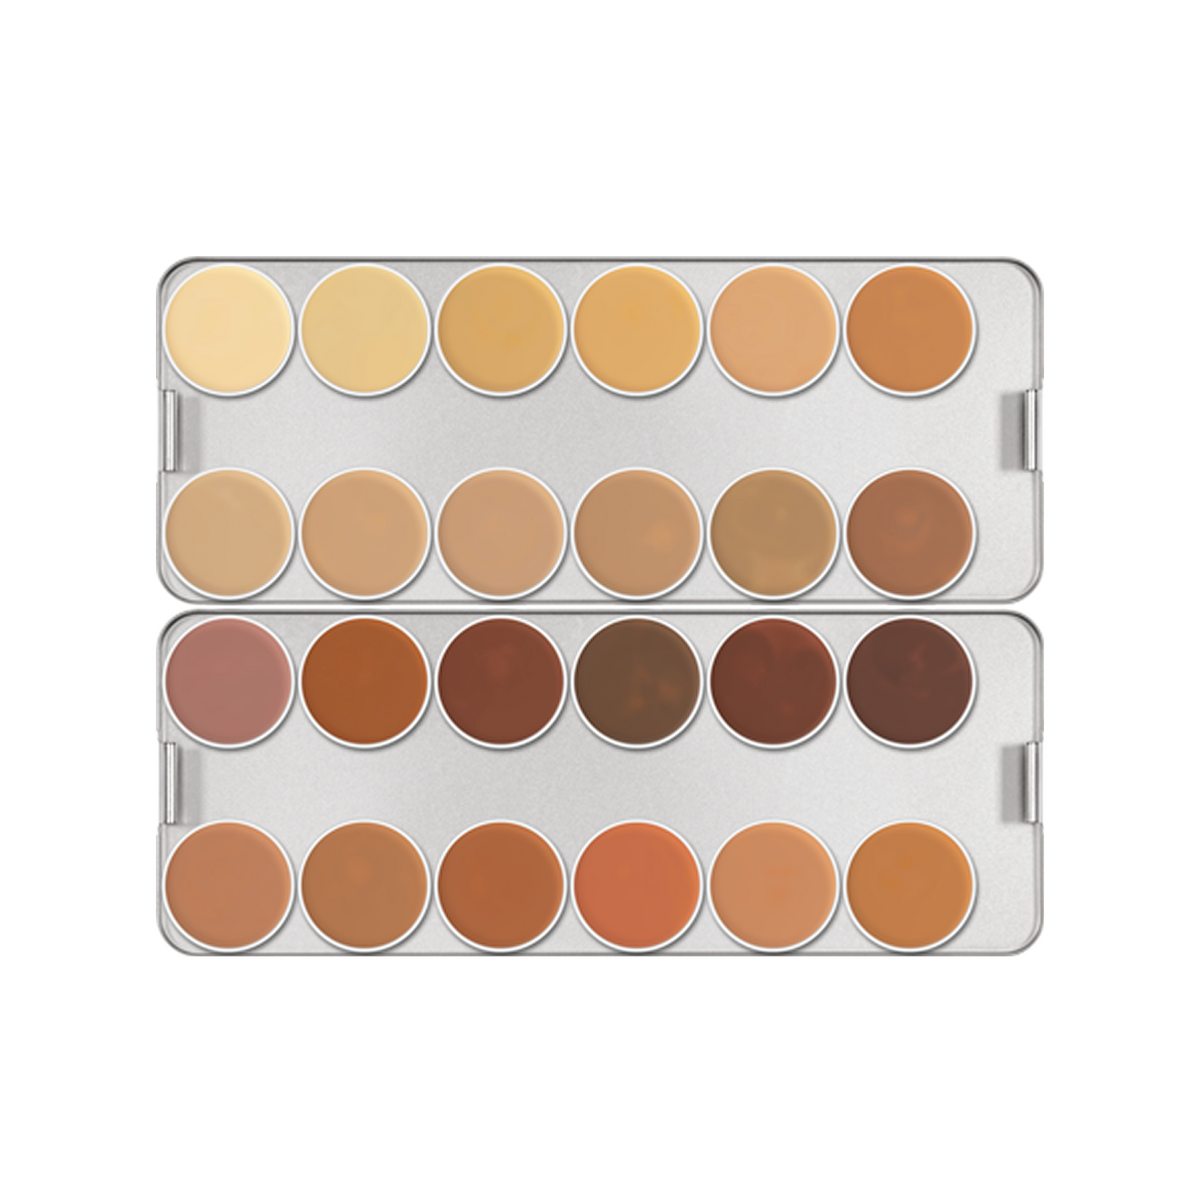 Dermacolor 24 Colour Creme Camouflage Palette - DM - Red Carpet FX - Professional Makeup